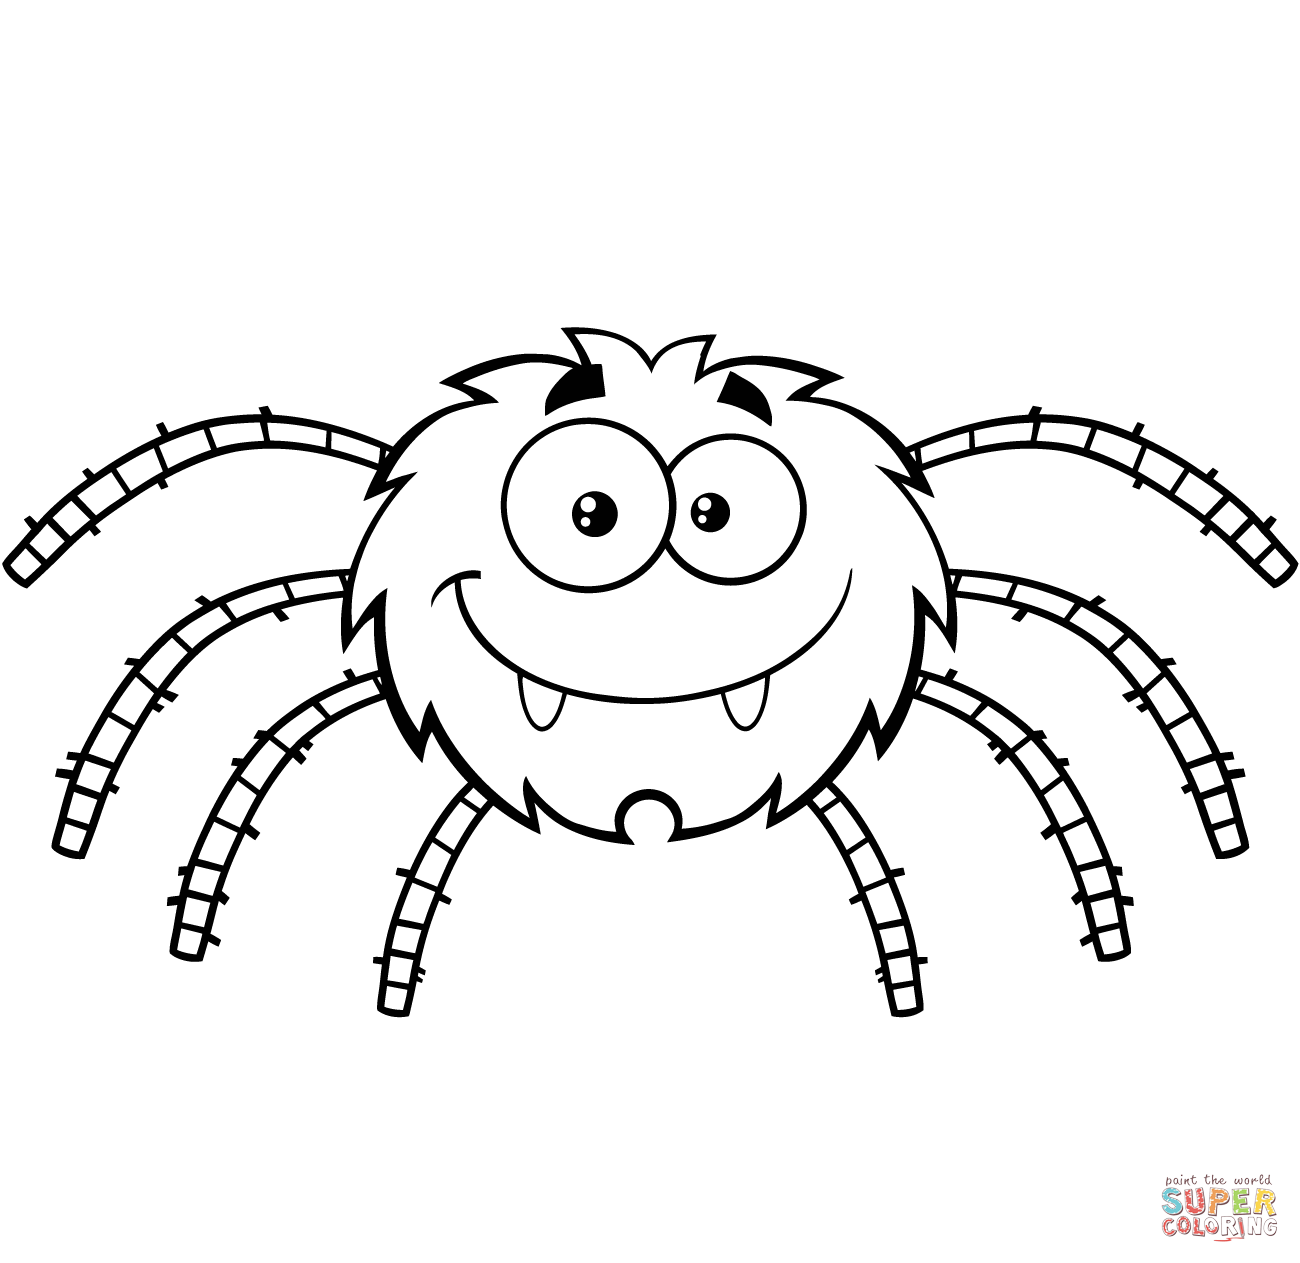 incy wincy spider colouring sheets incy wincy spider coloring pages print coloring colouring sheets spider wincy incy